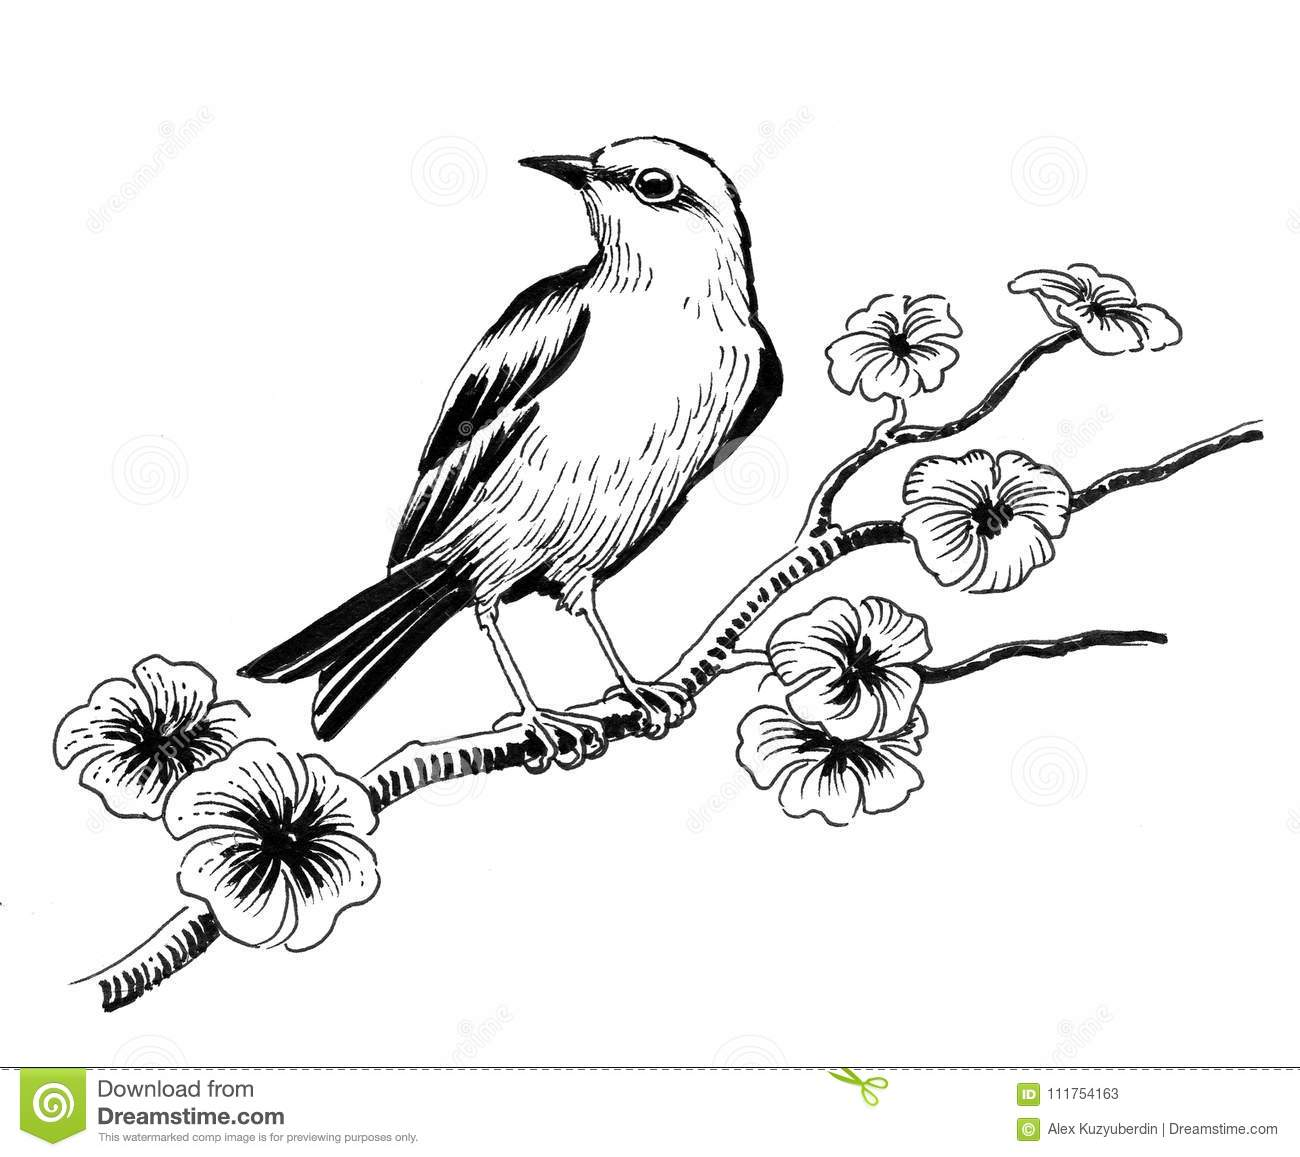 Bird on a tree stock illustration. Illustration of white